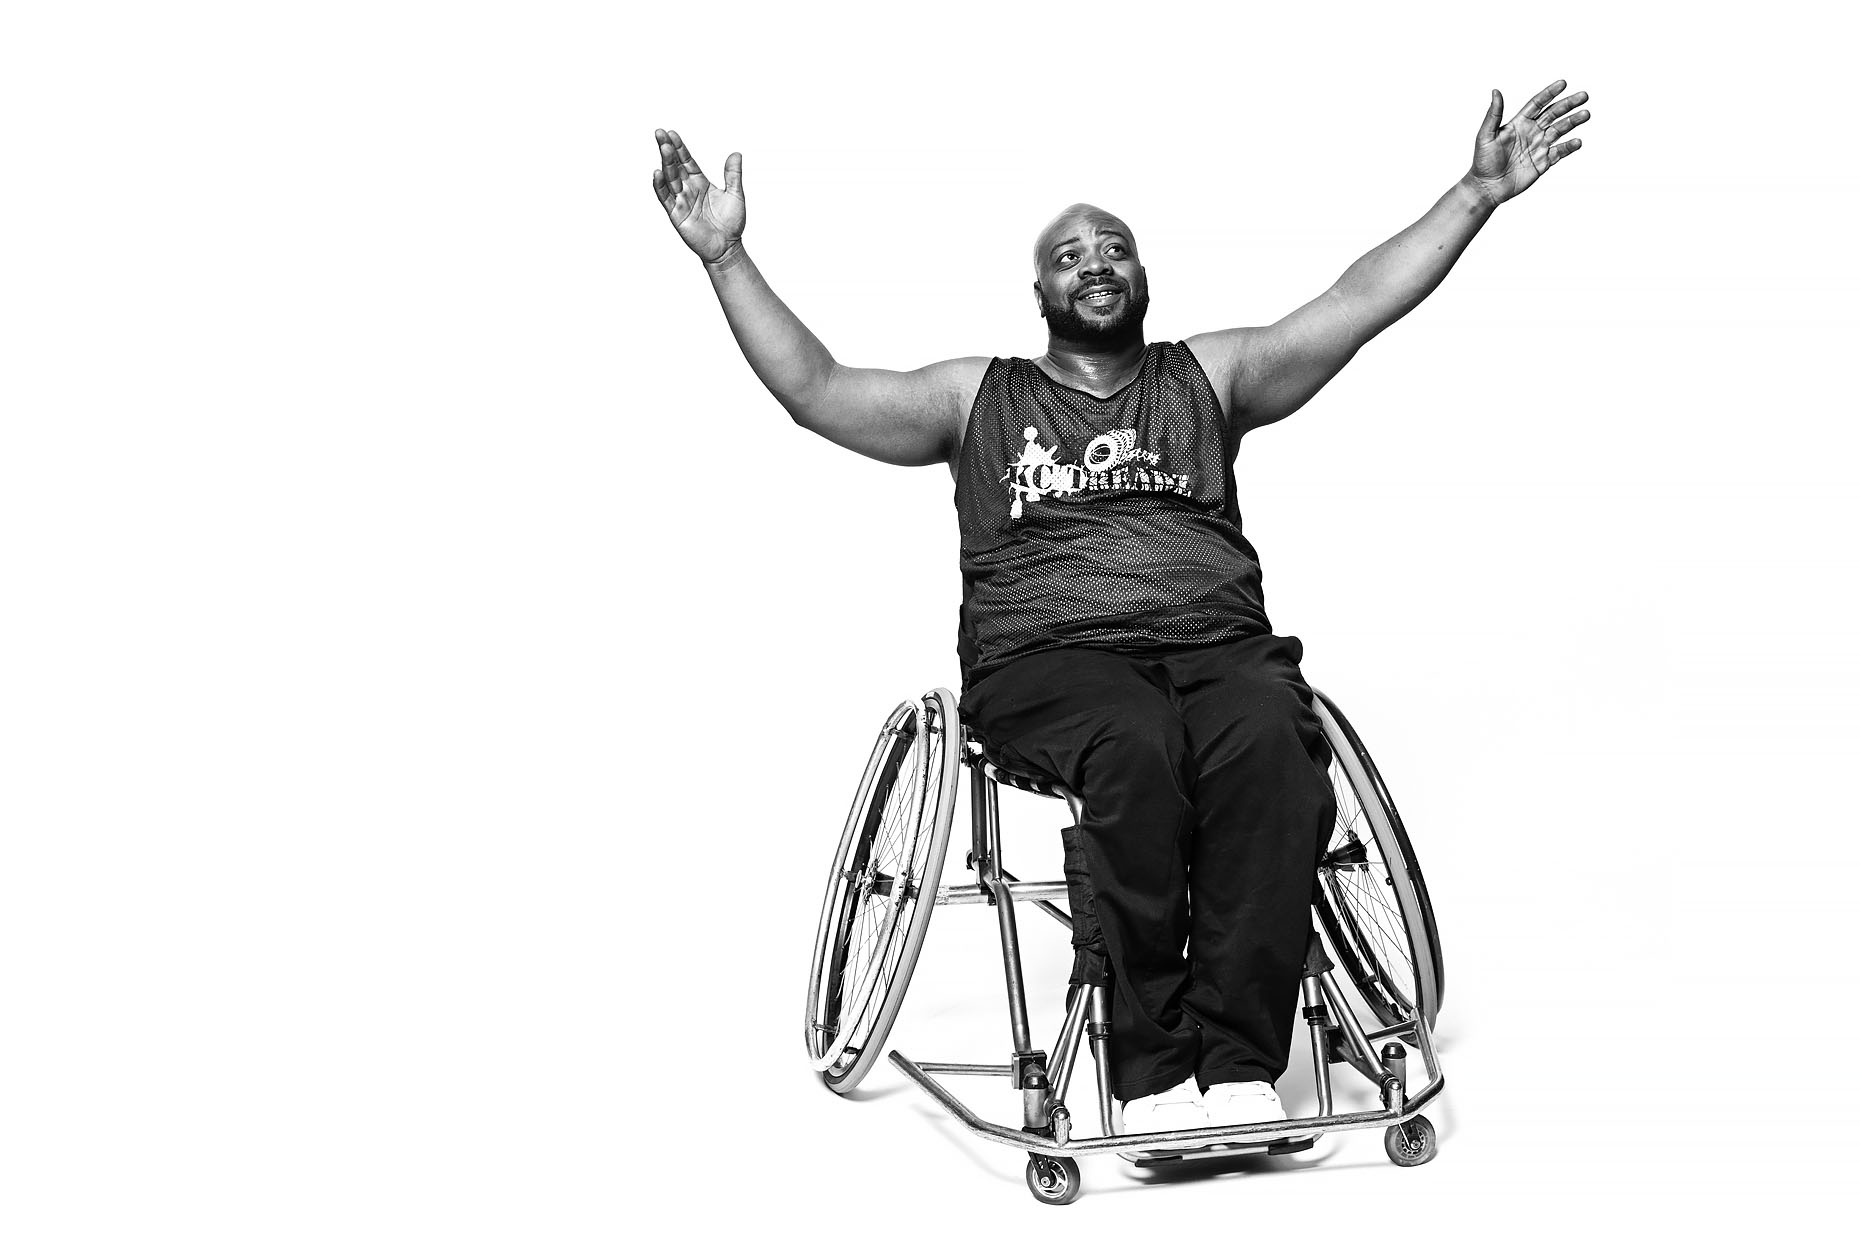 Wheelchair basketball player Michael Minor in Kansas City, MO